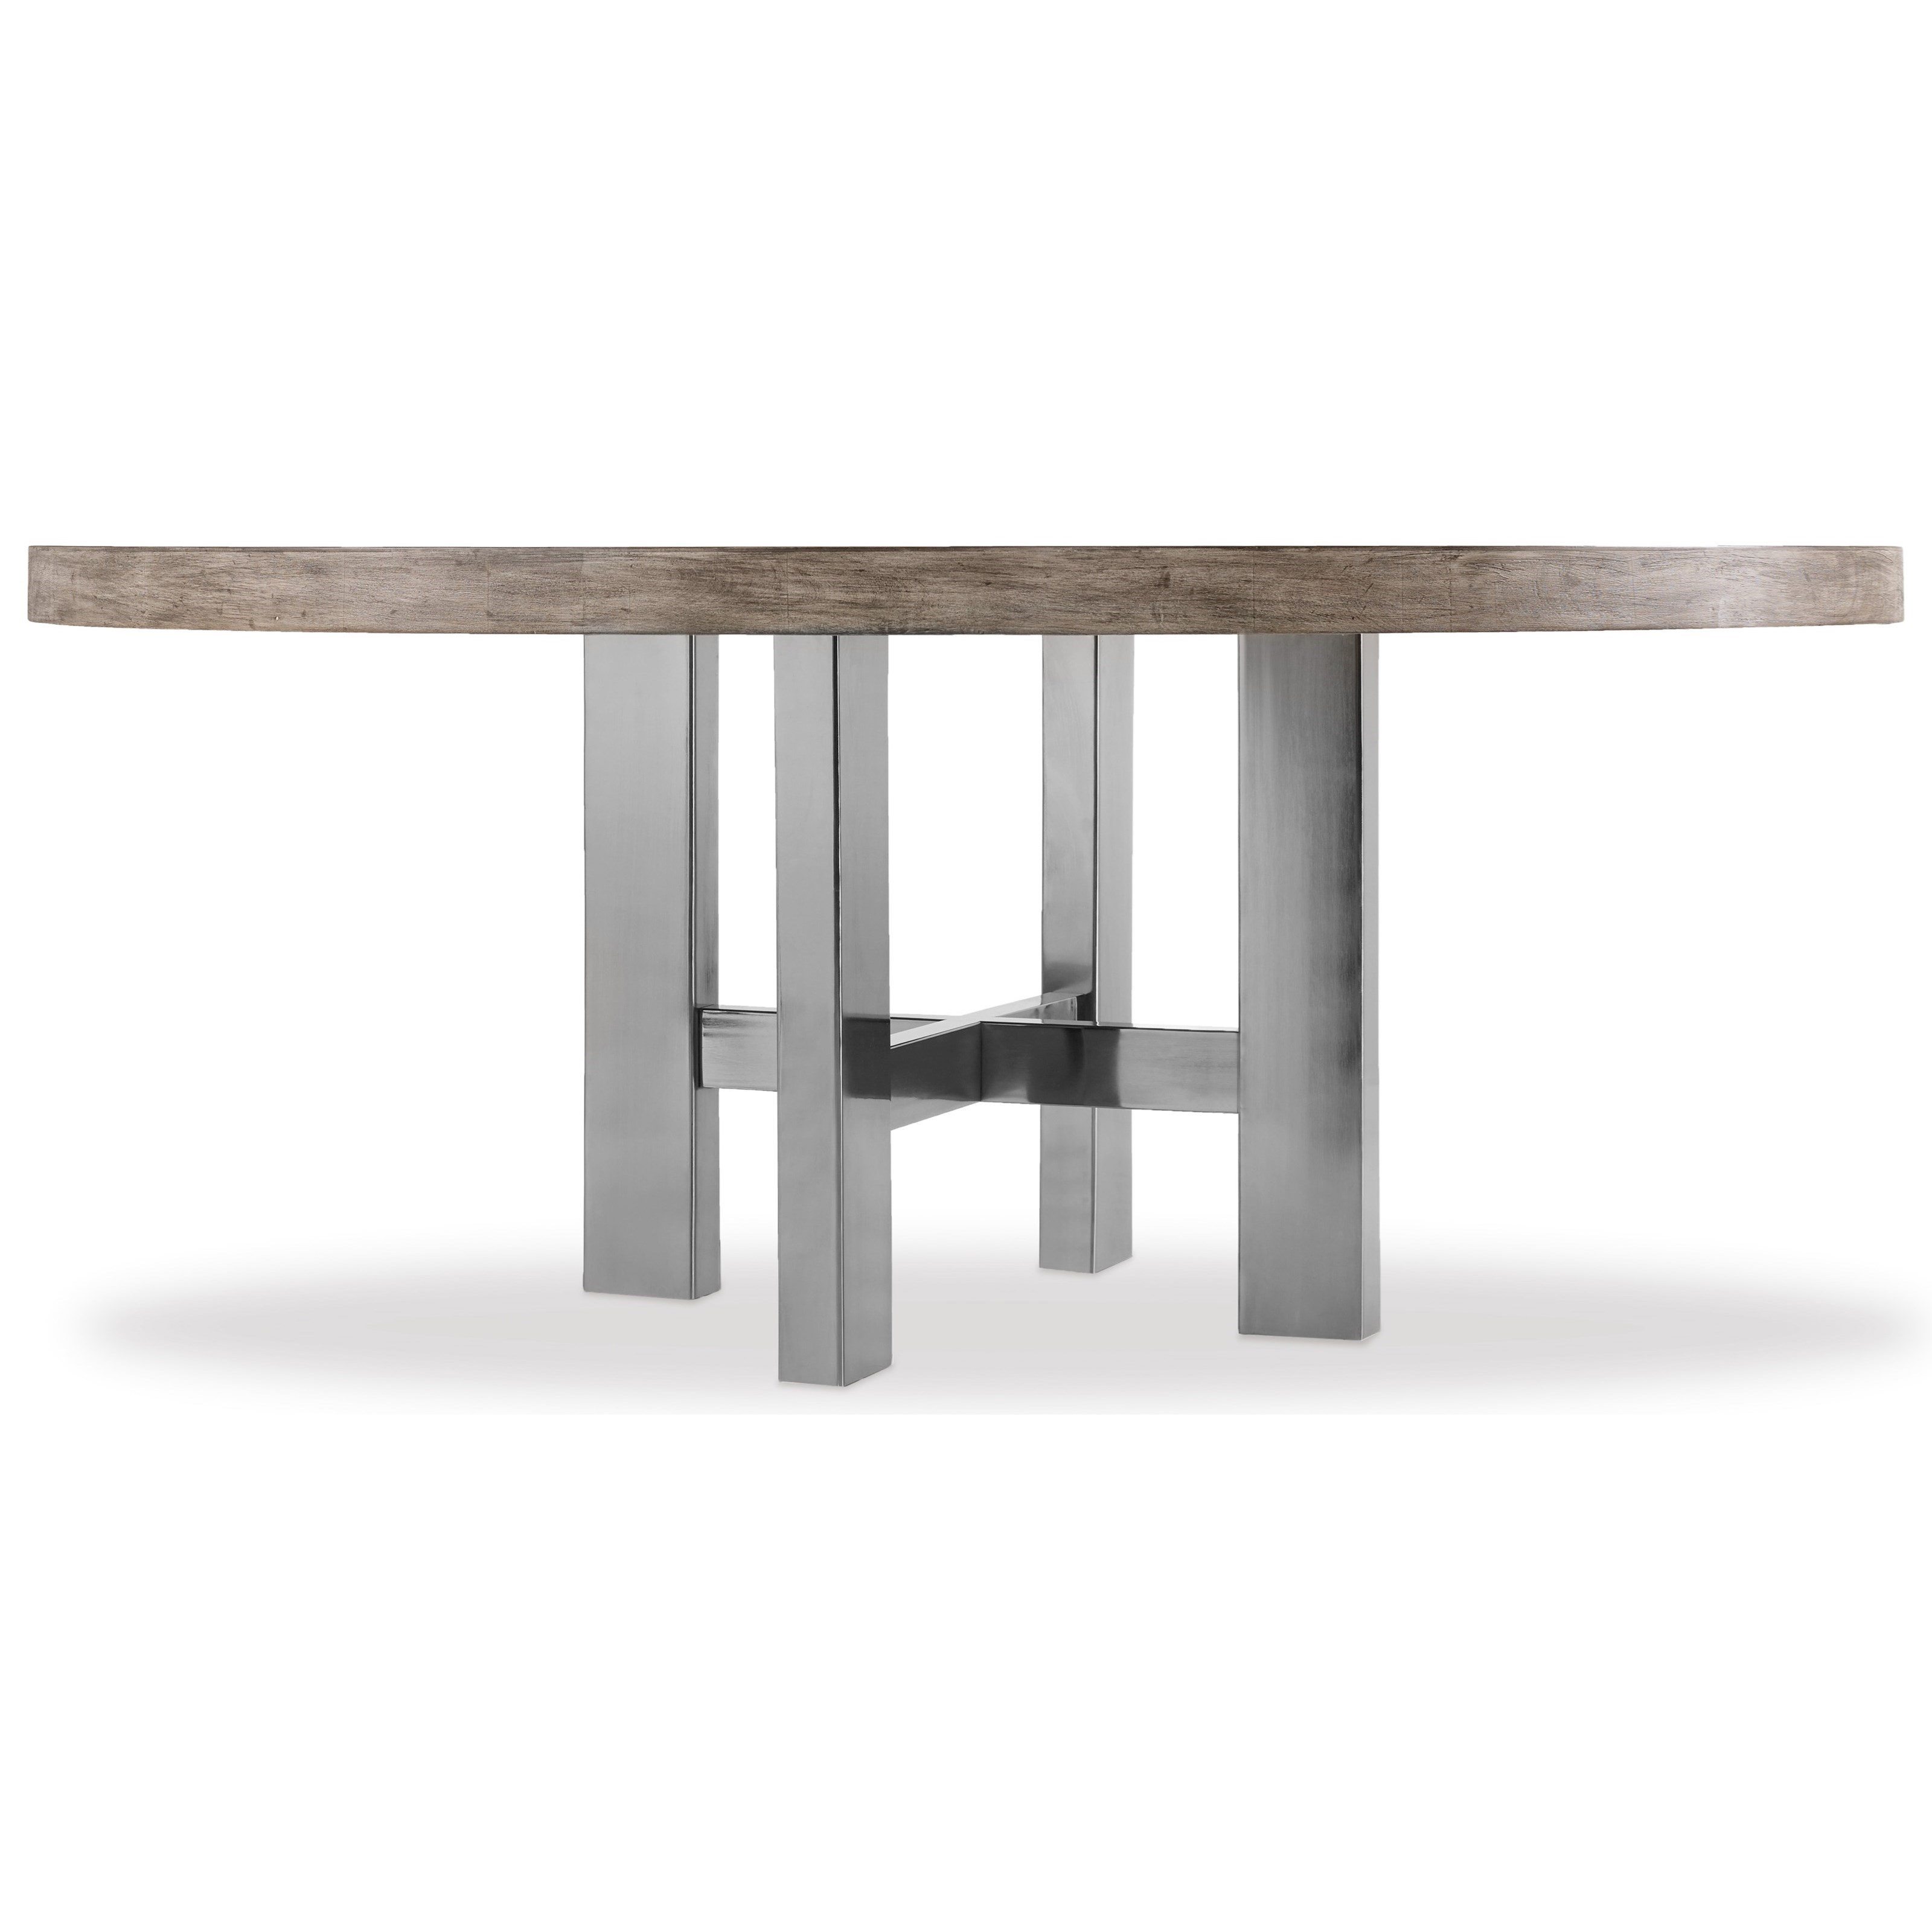 Hooker furniture curata 1600 75211 mwd large modern round for Large modern dining table